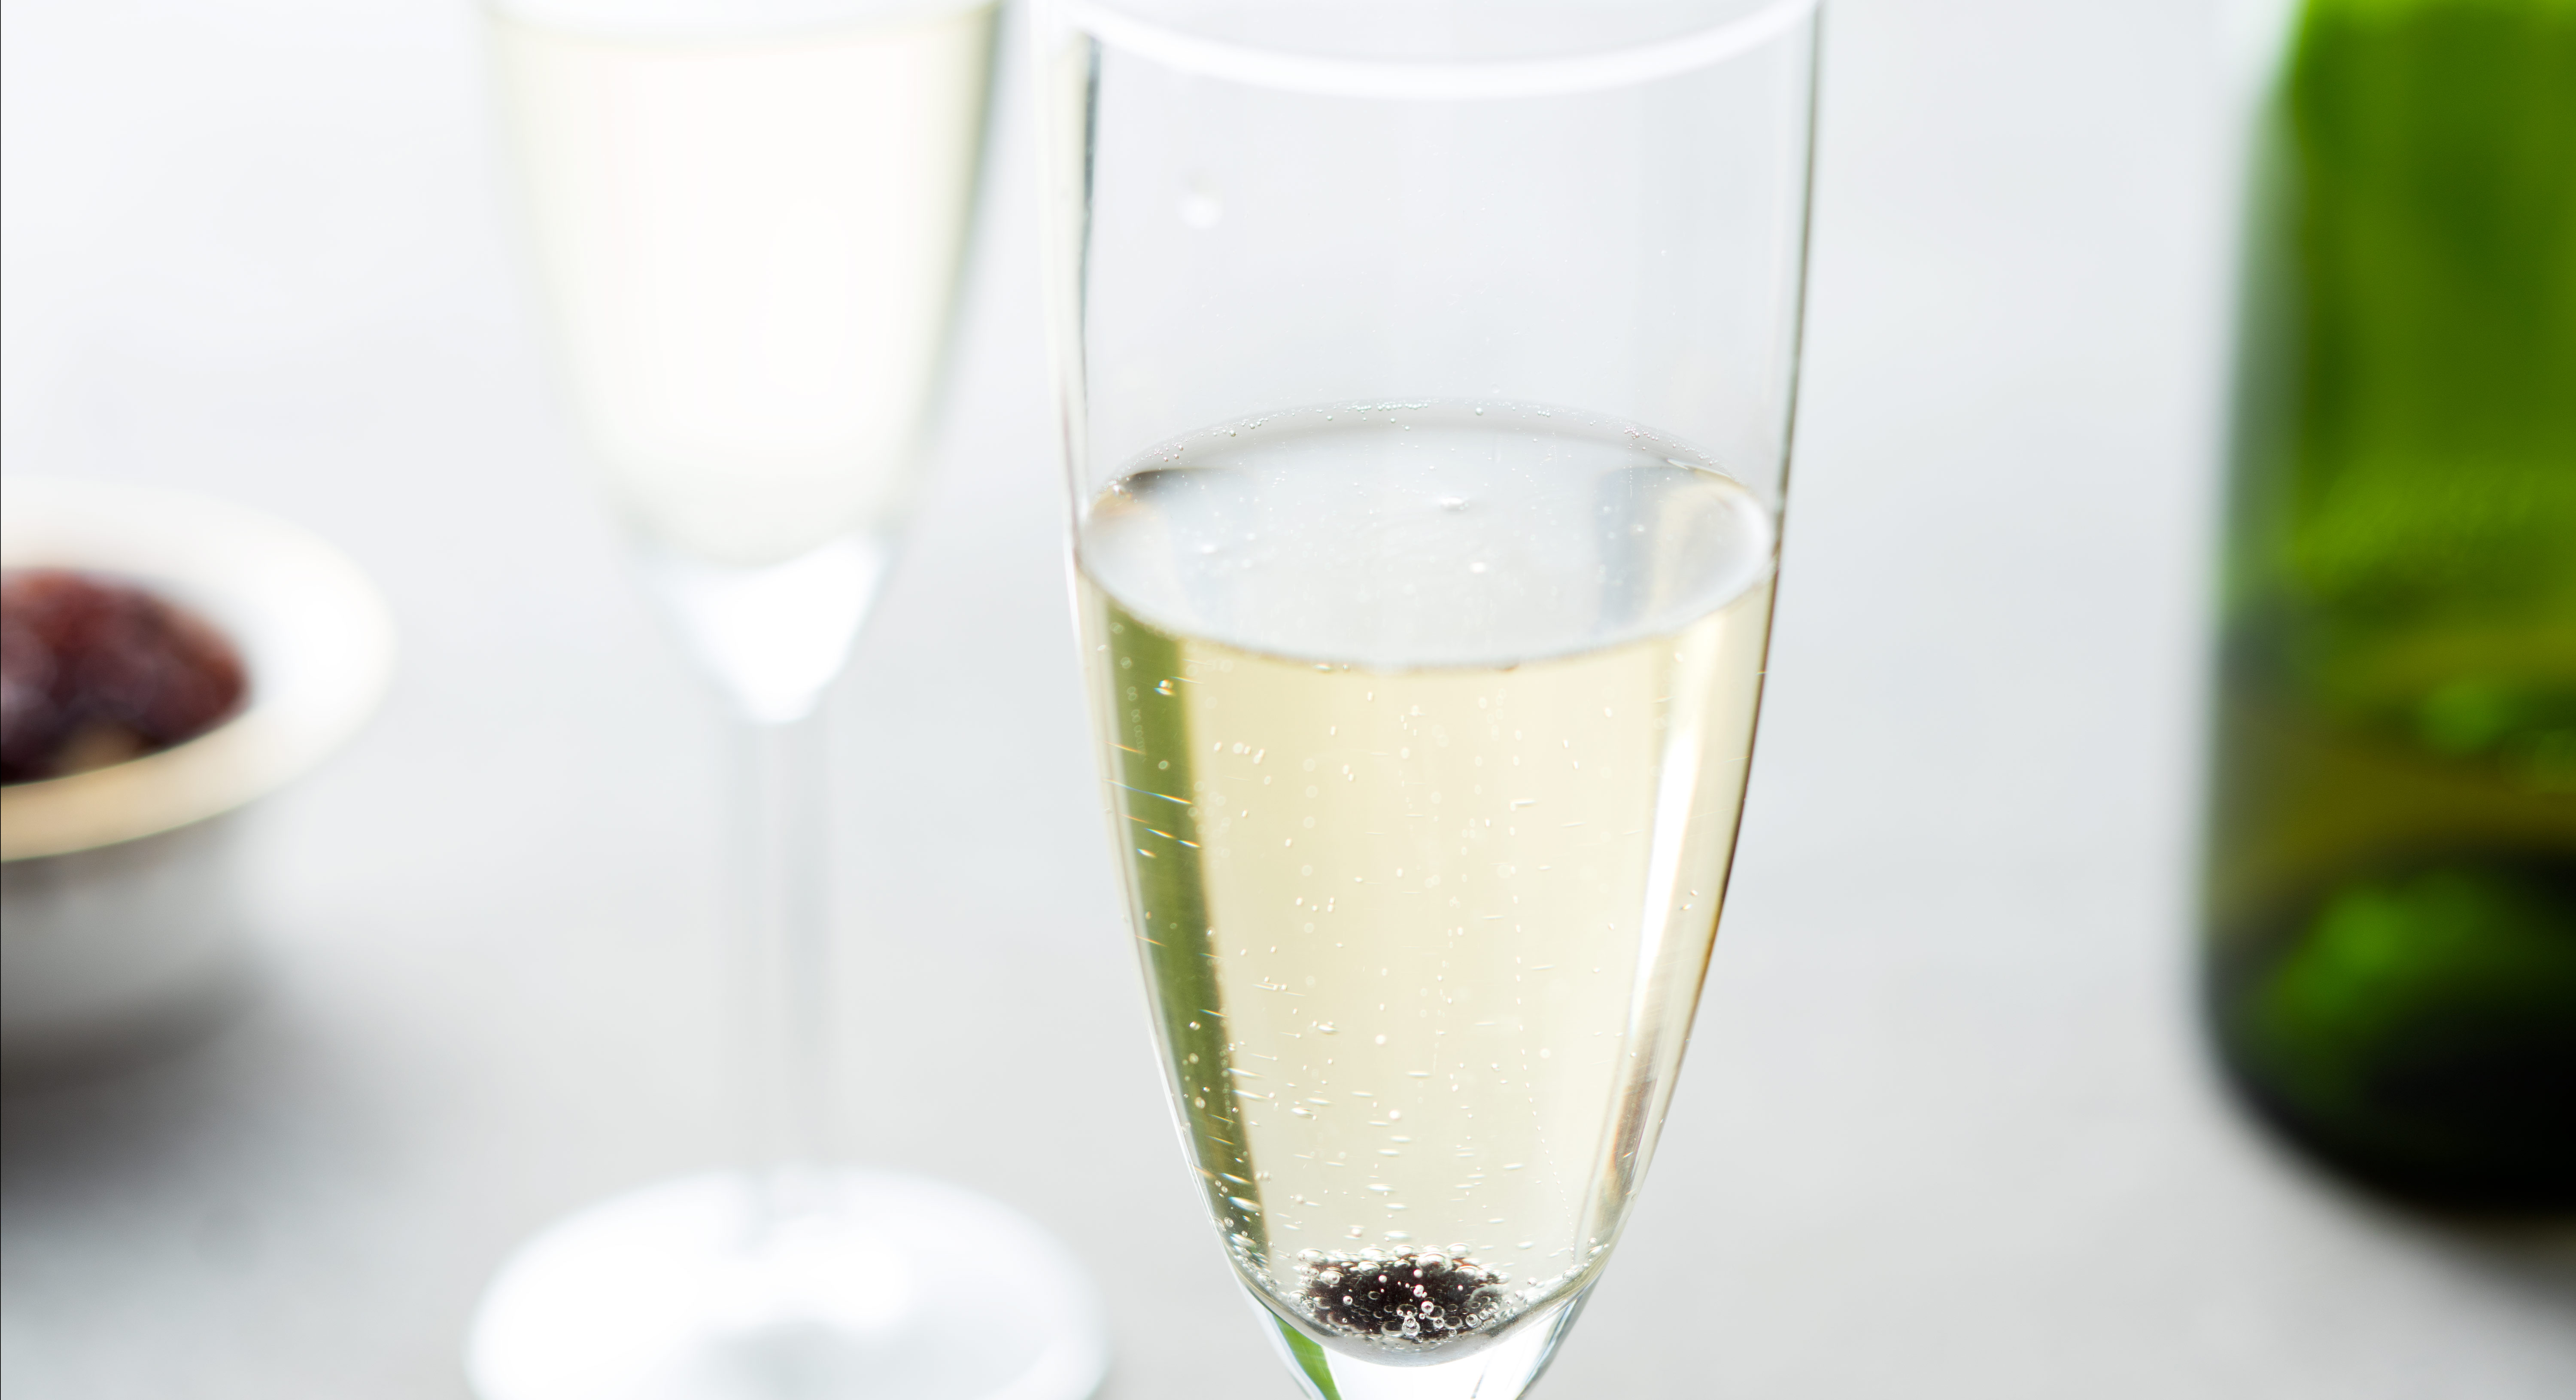 How Does A Raisin Revive Champagne?